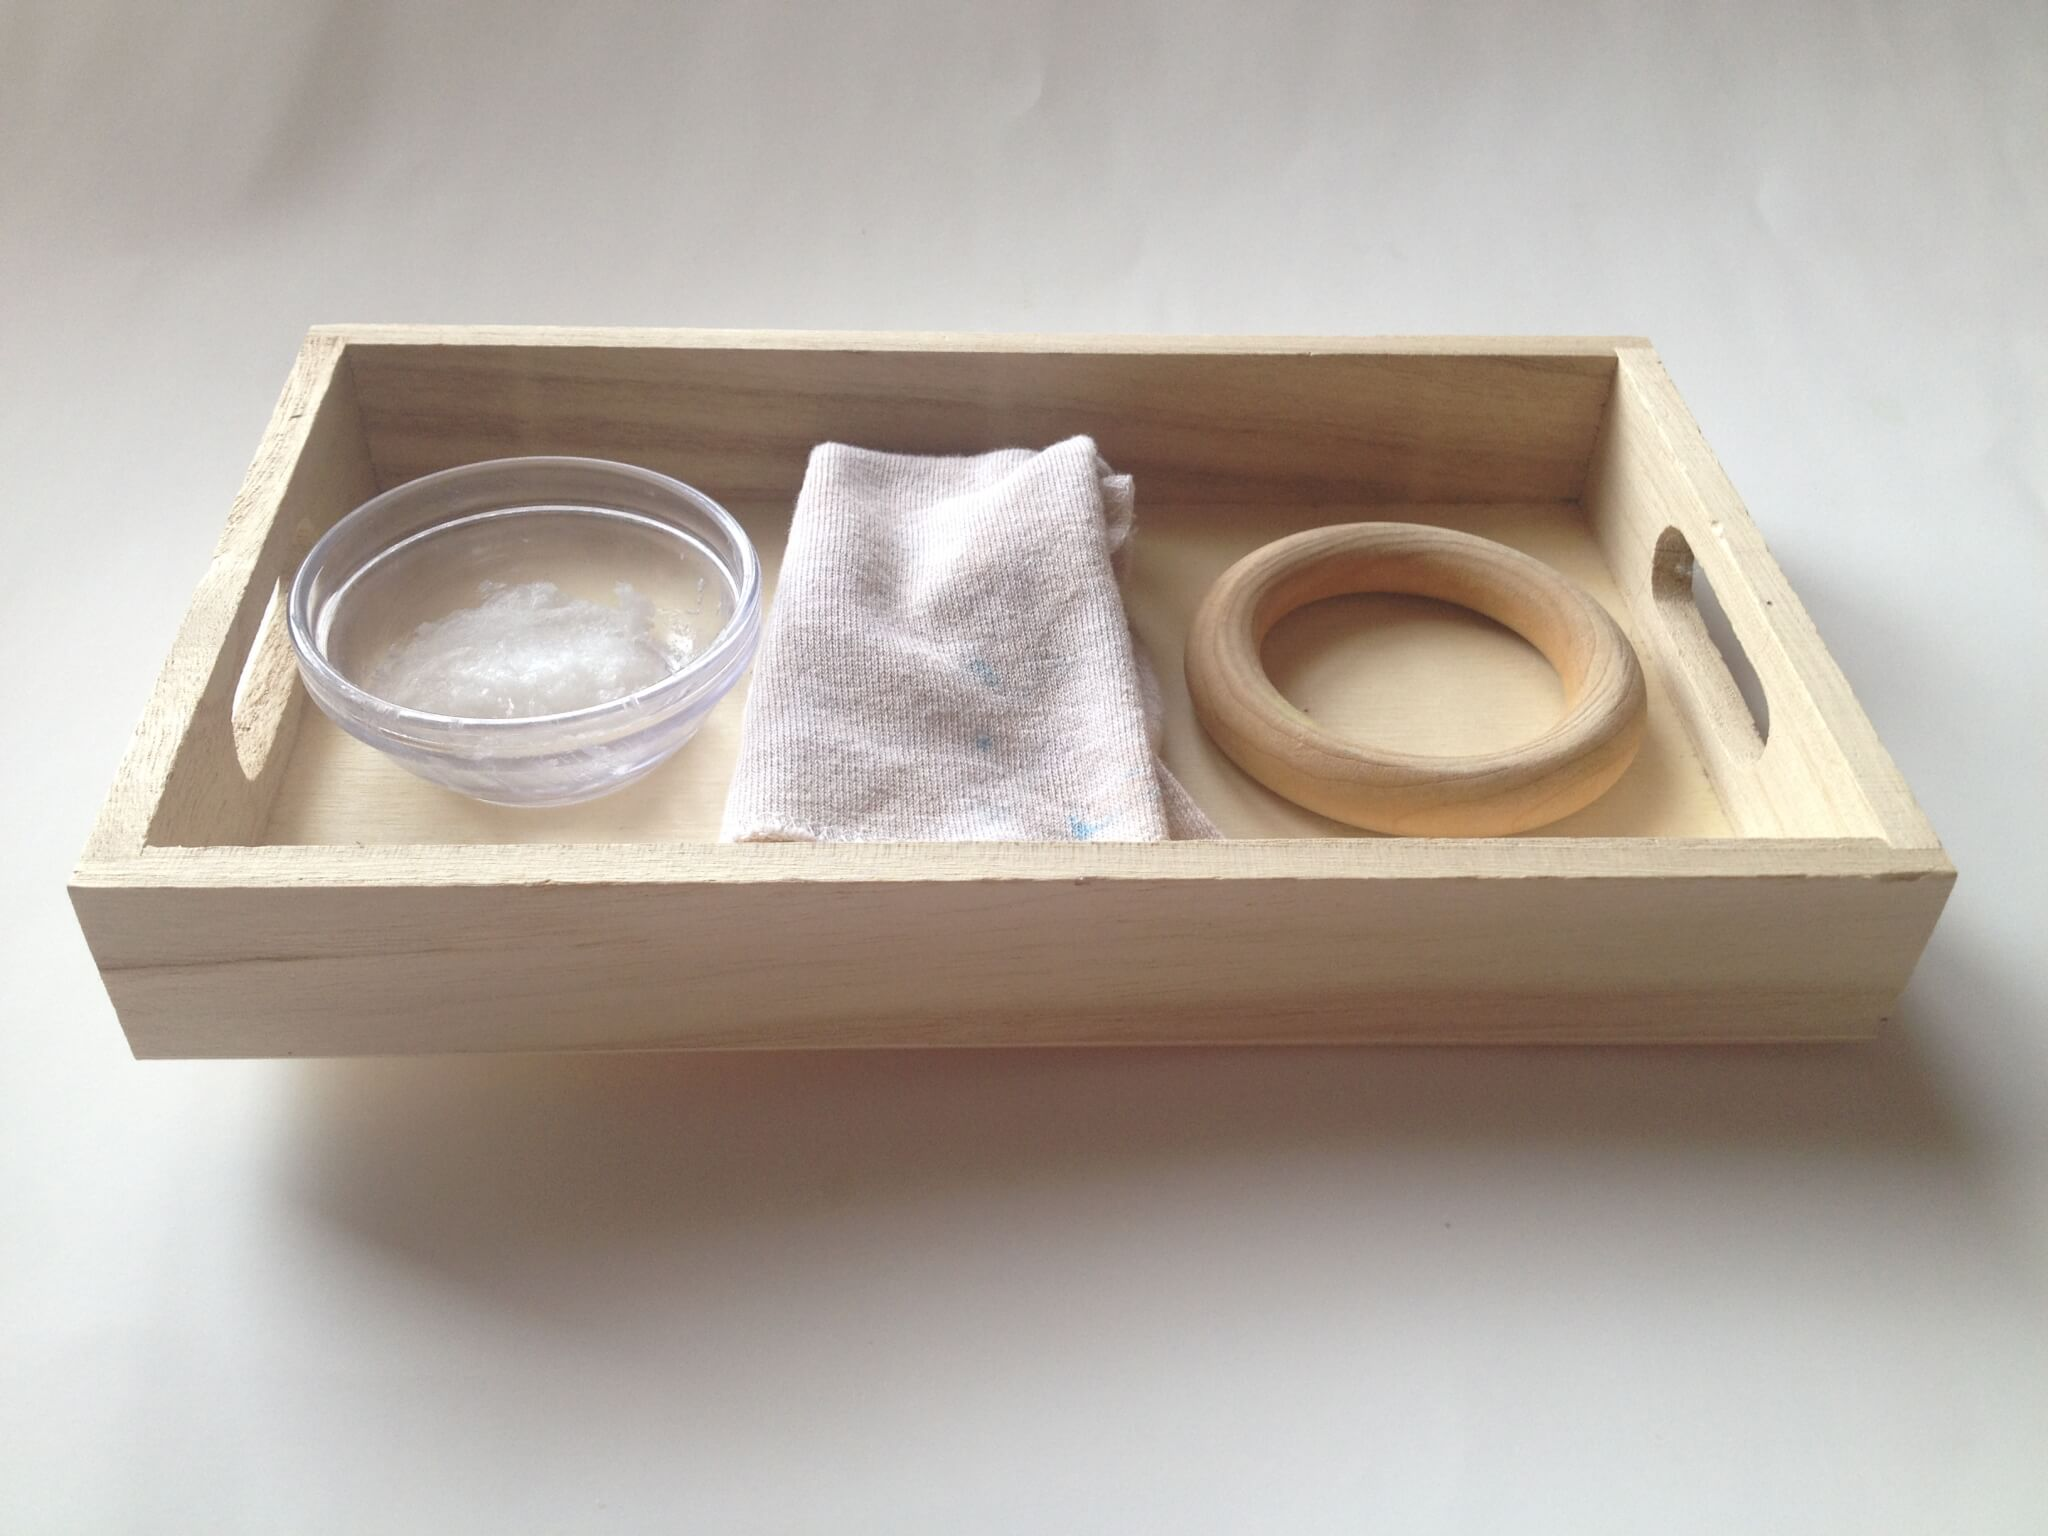 polishing wood practical life tray -- for making your own diy waldorf hand kite for spring